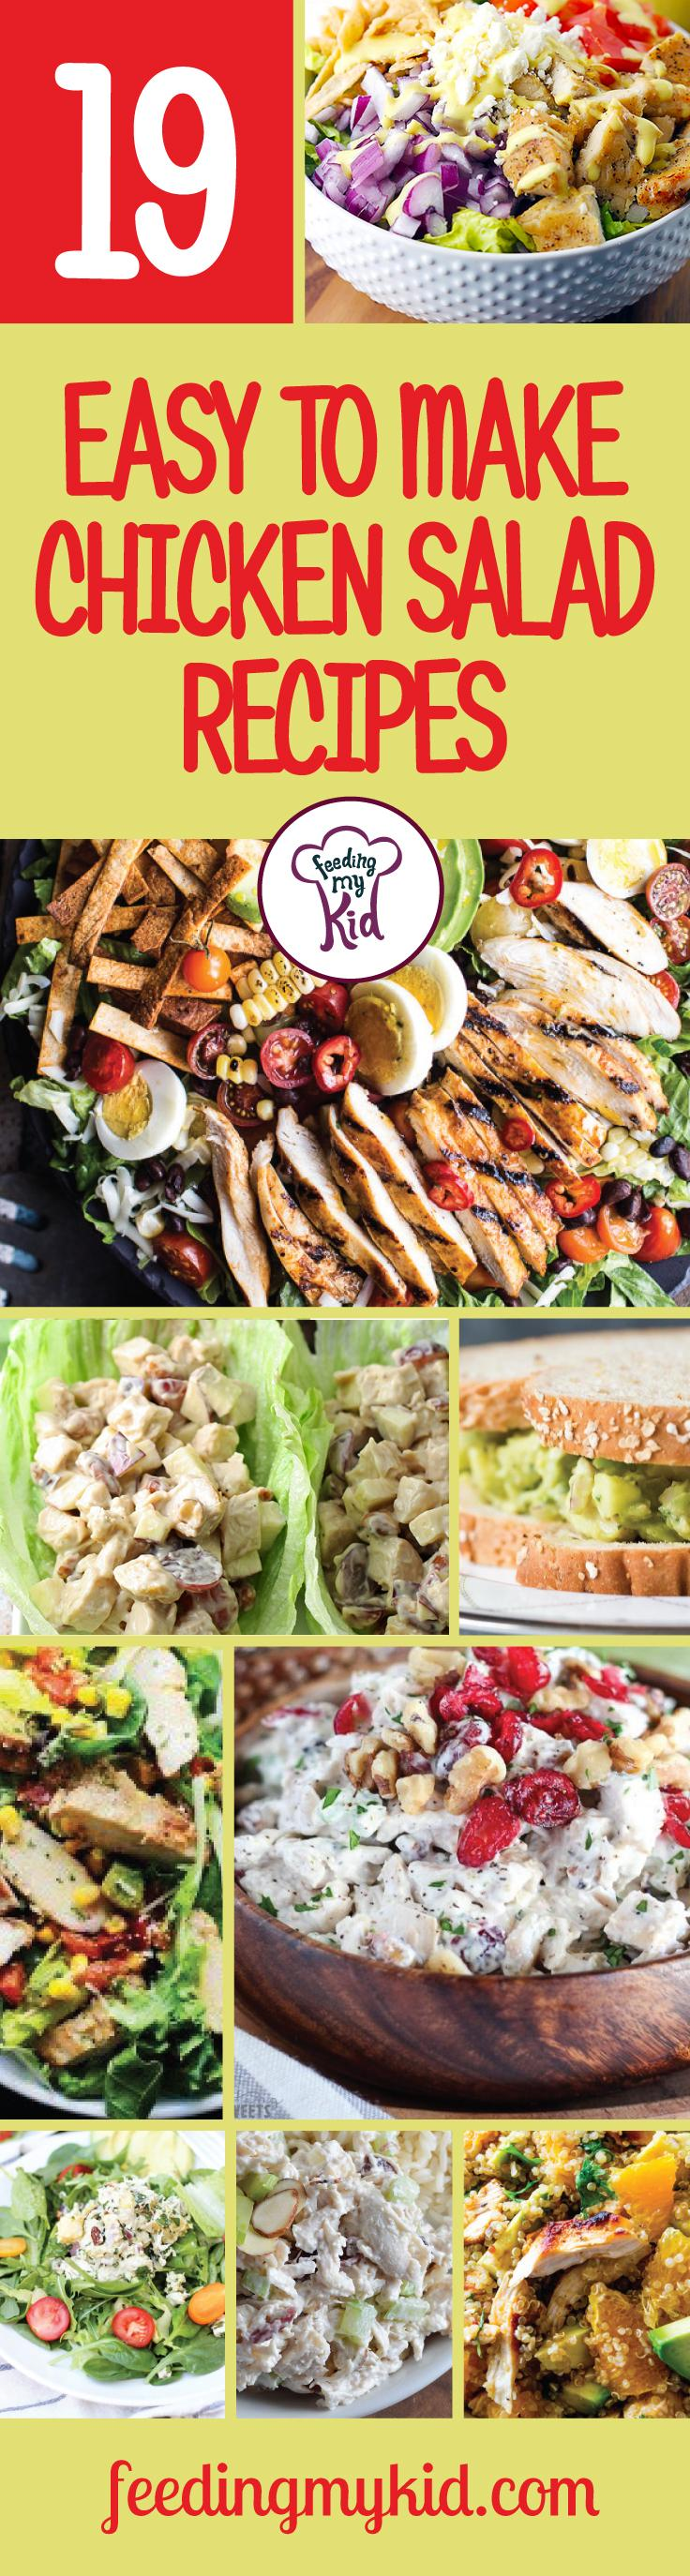 19 Easy to Make Chicken Salad Recipes - This is a must share! Chicken Salad, whether it's traditionally made or has a new spin on it, is always a delicious, easy to make meal that the whole family will love. Whether's it's the perfect lunch, a quick and easy dinner or a packed picnic meal, chicken salad makes a great treat! That's why we put together not just one chicken salad recipe but many chicken salad recipes, just for you! This is a must pin! #fmk #recipes #chicken